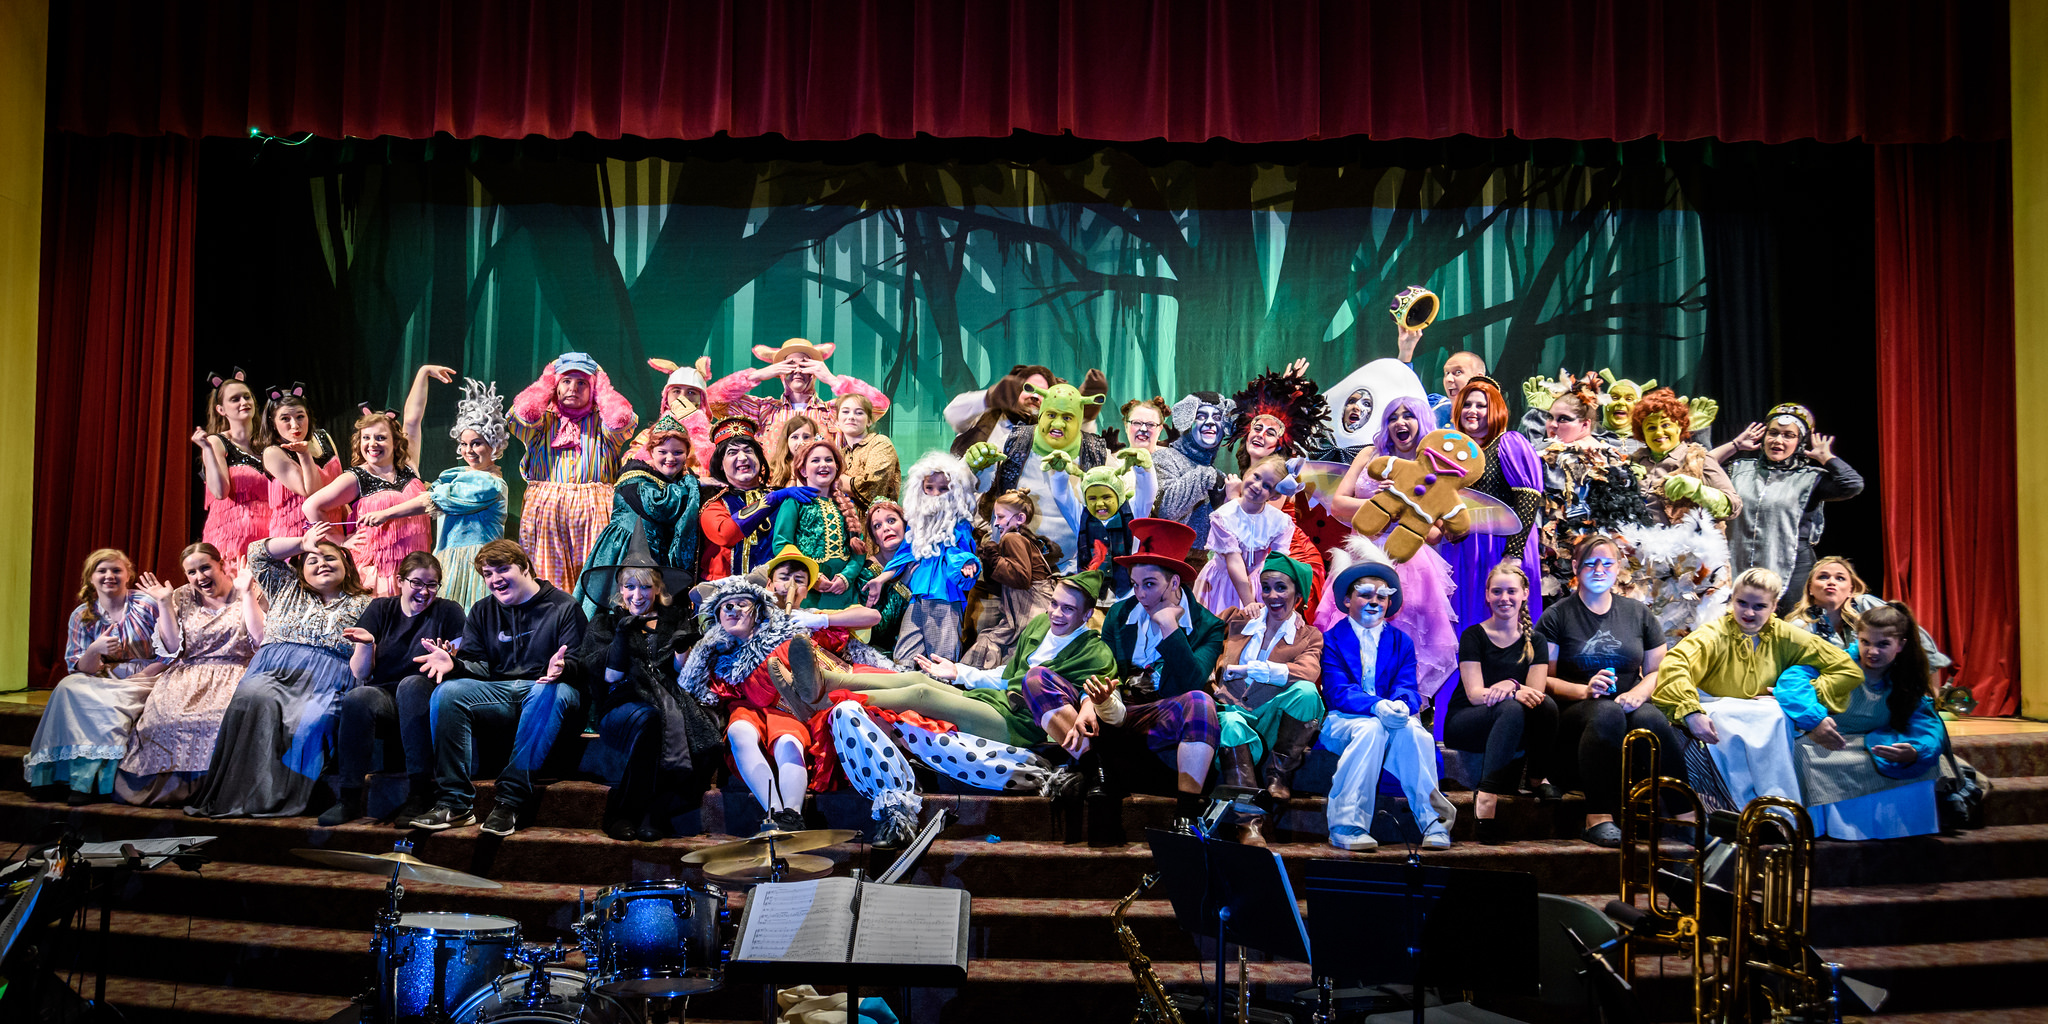 The entire cast of Shrek the Musical